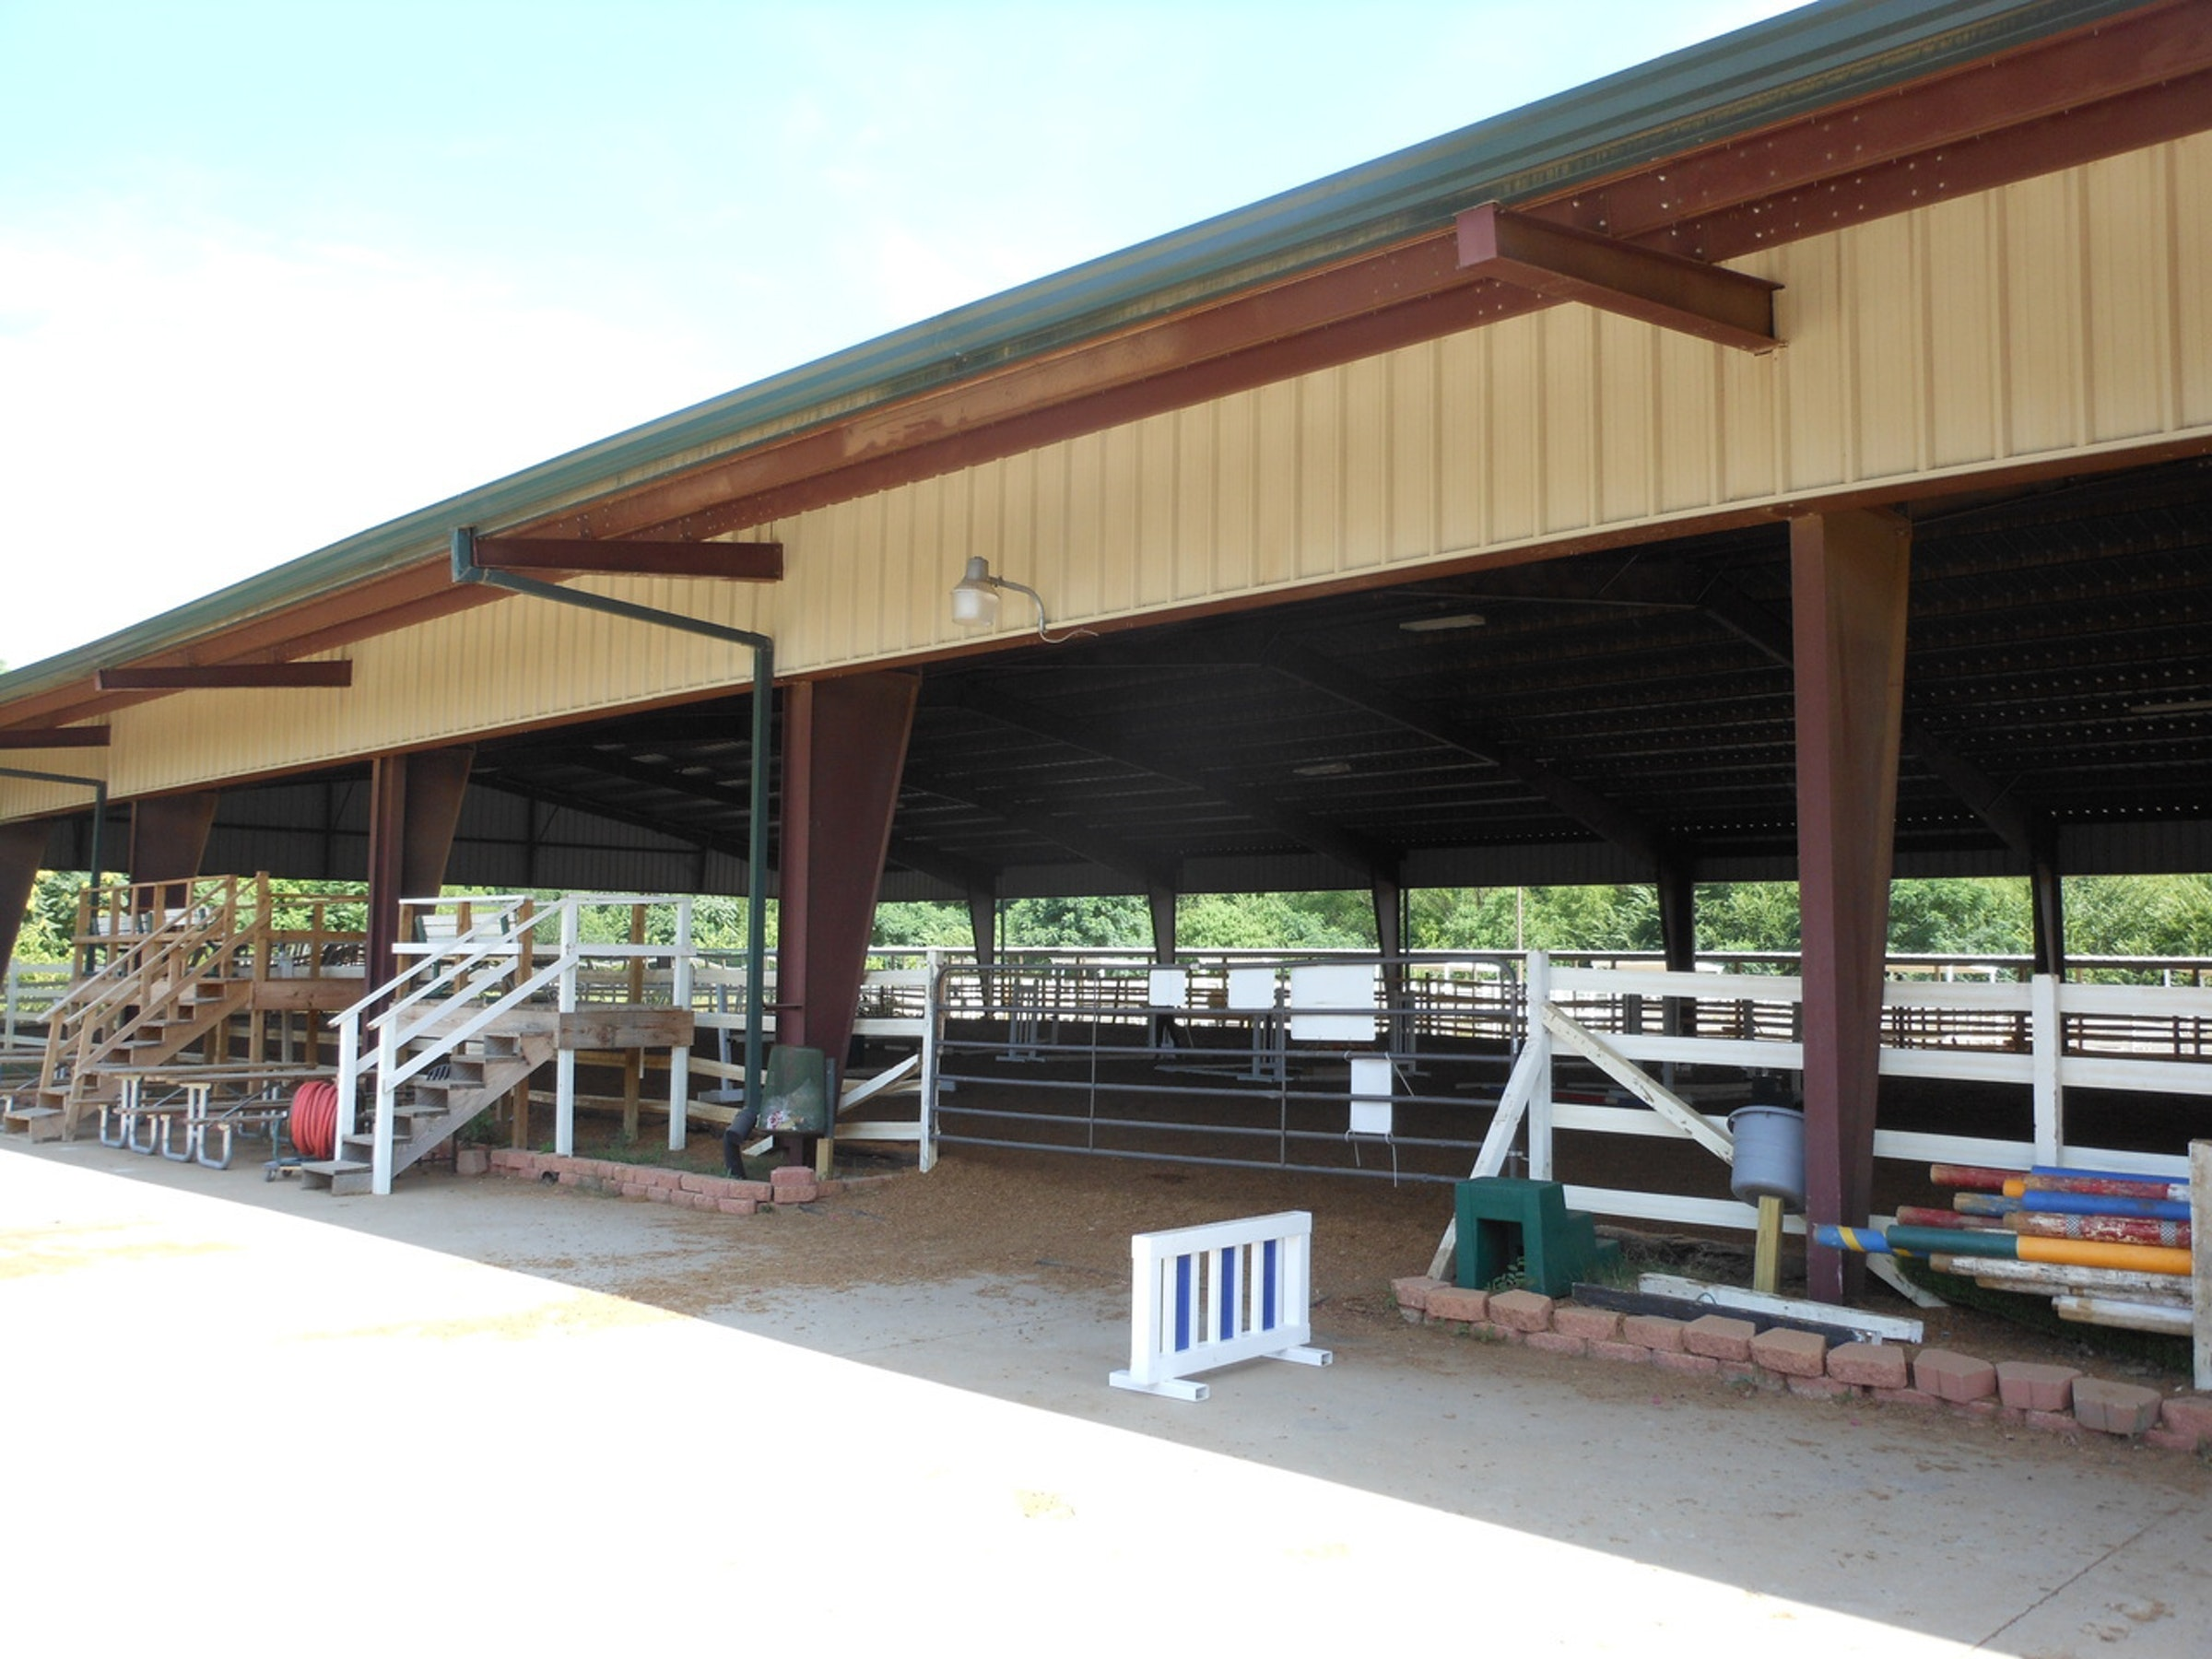 Dallas Equestrian Center